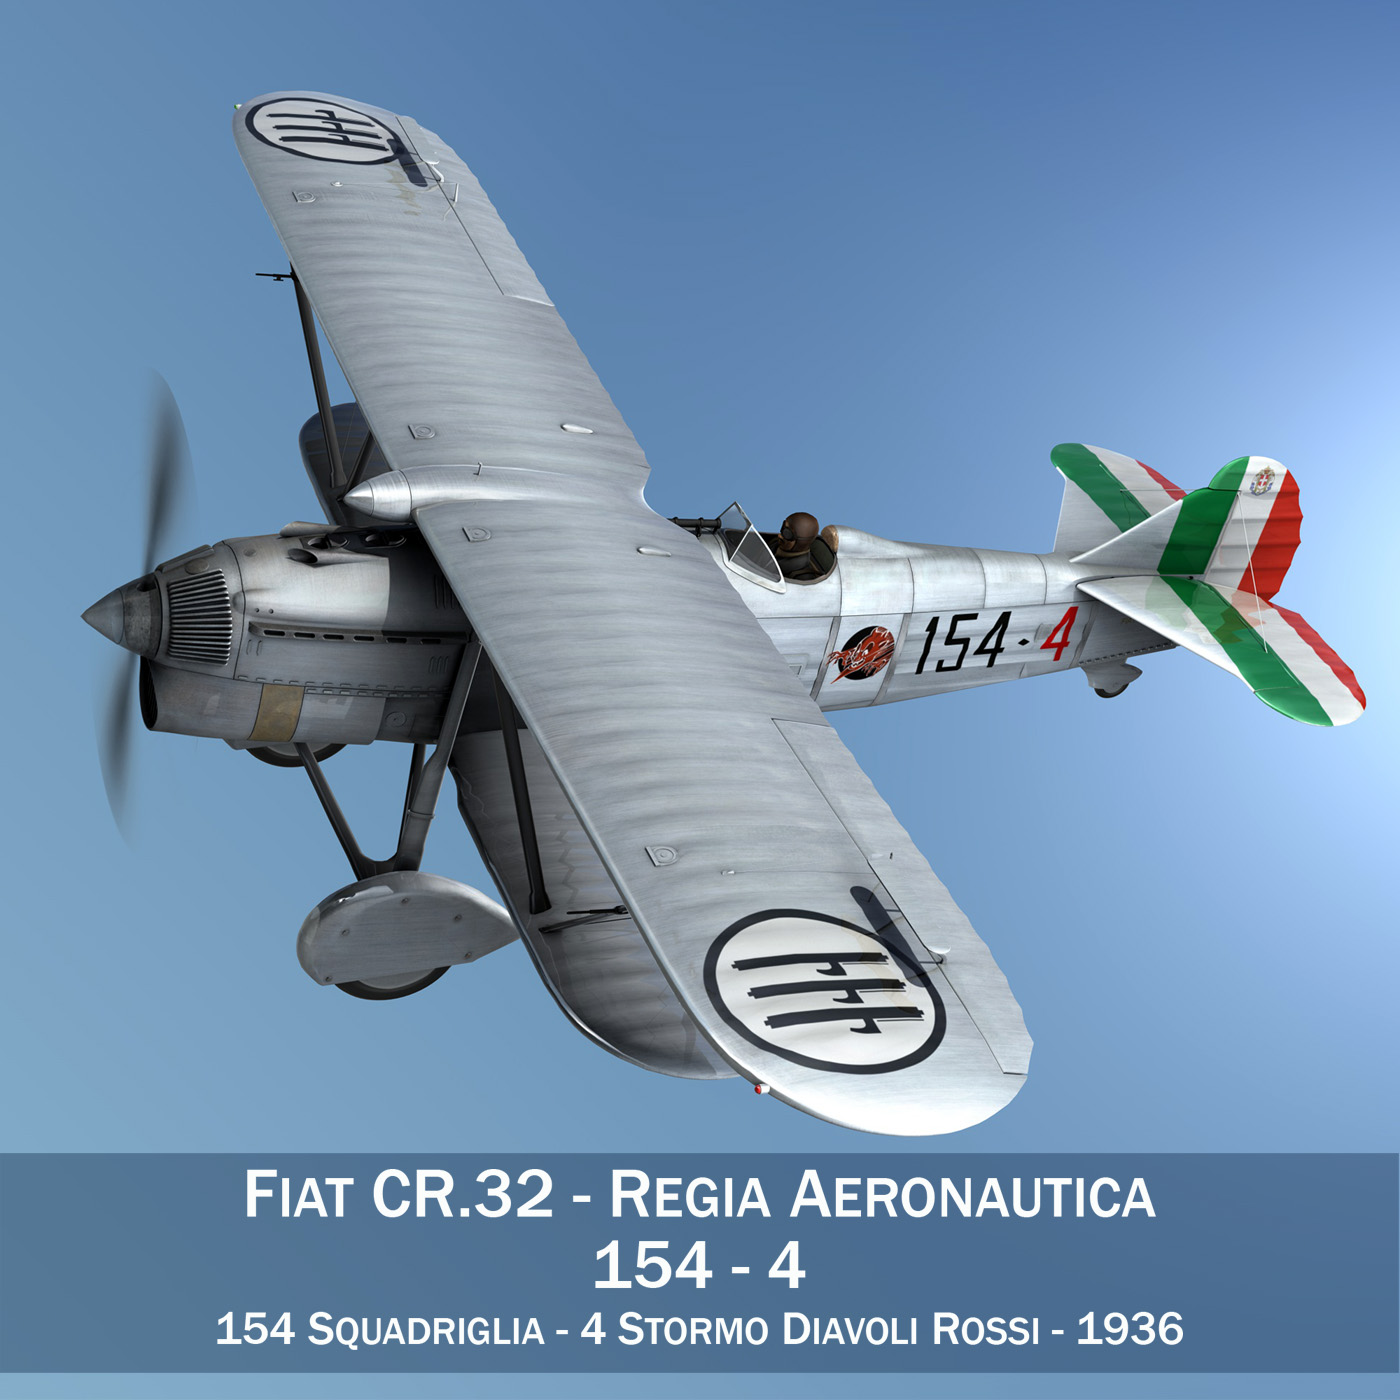 fiat cr.32 – italy airforce – 154 squadriglia 3d model fbx c4d lwo obj 268128